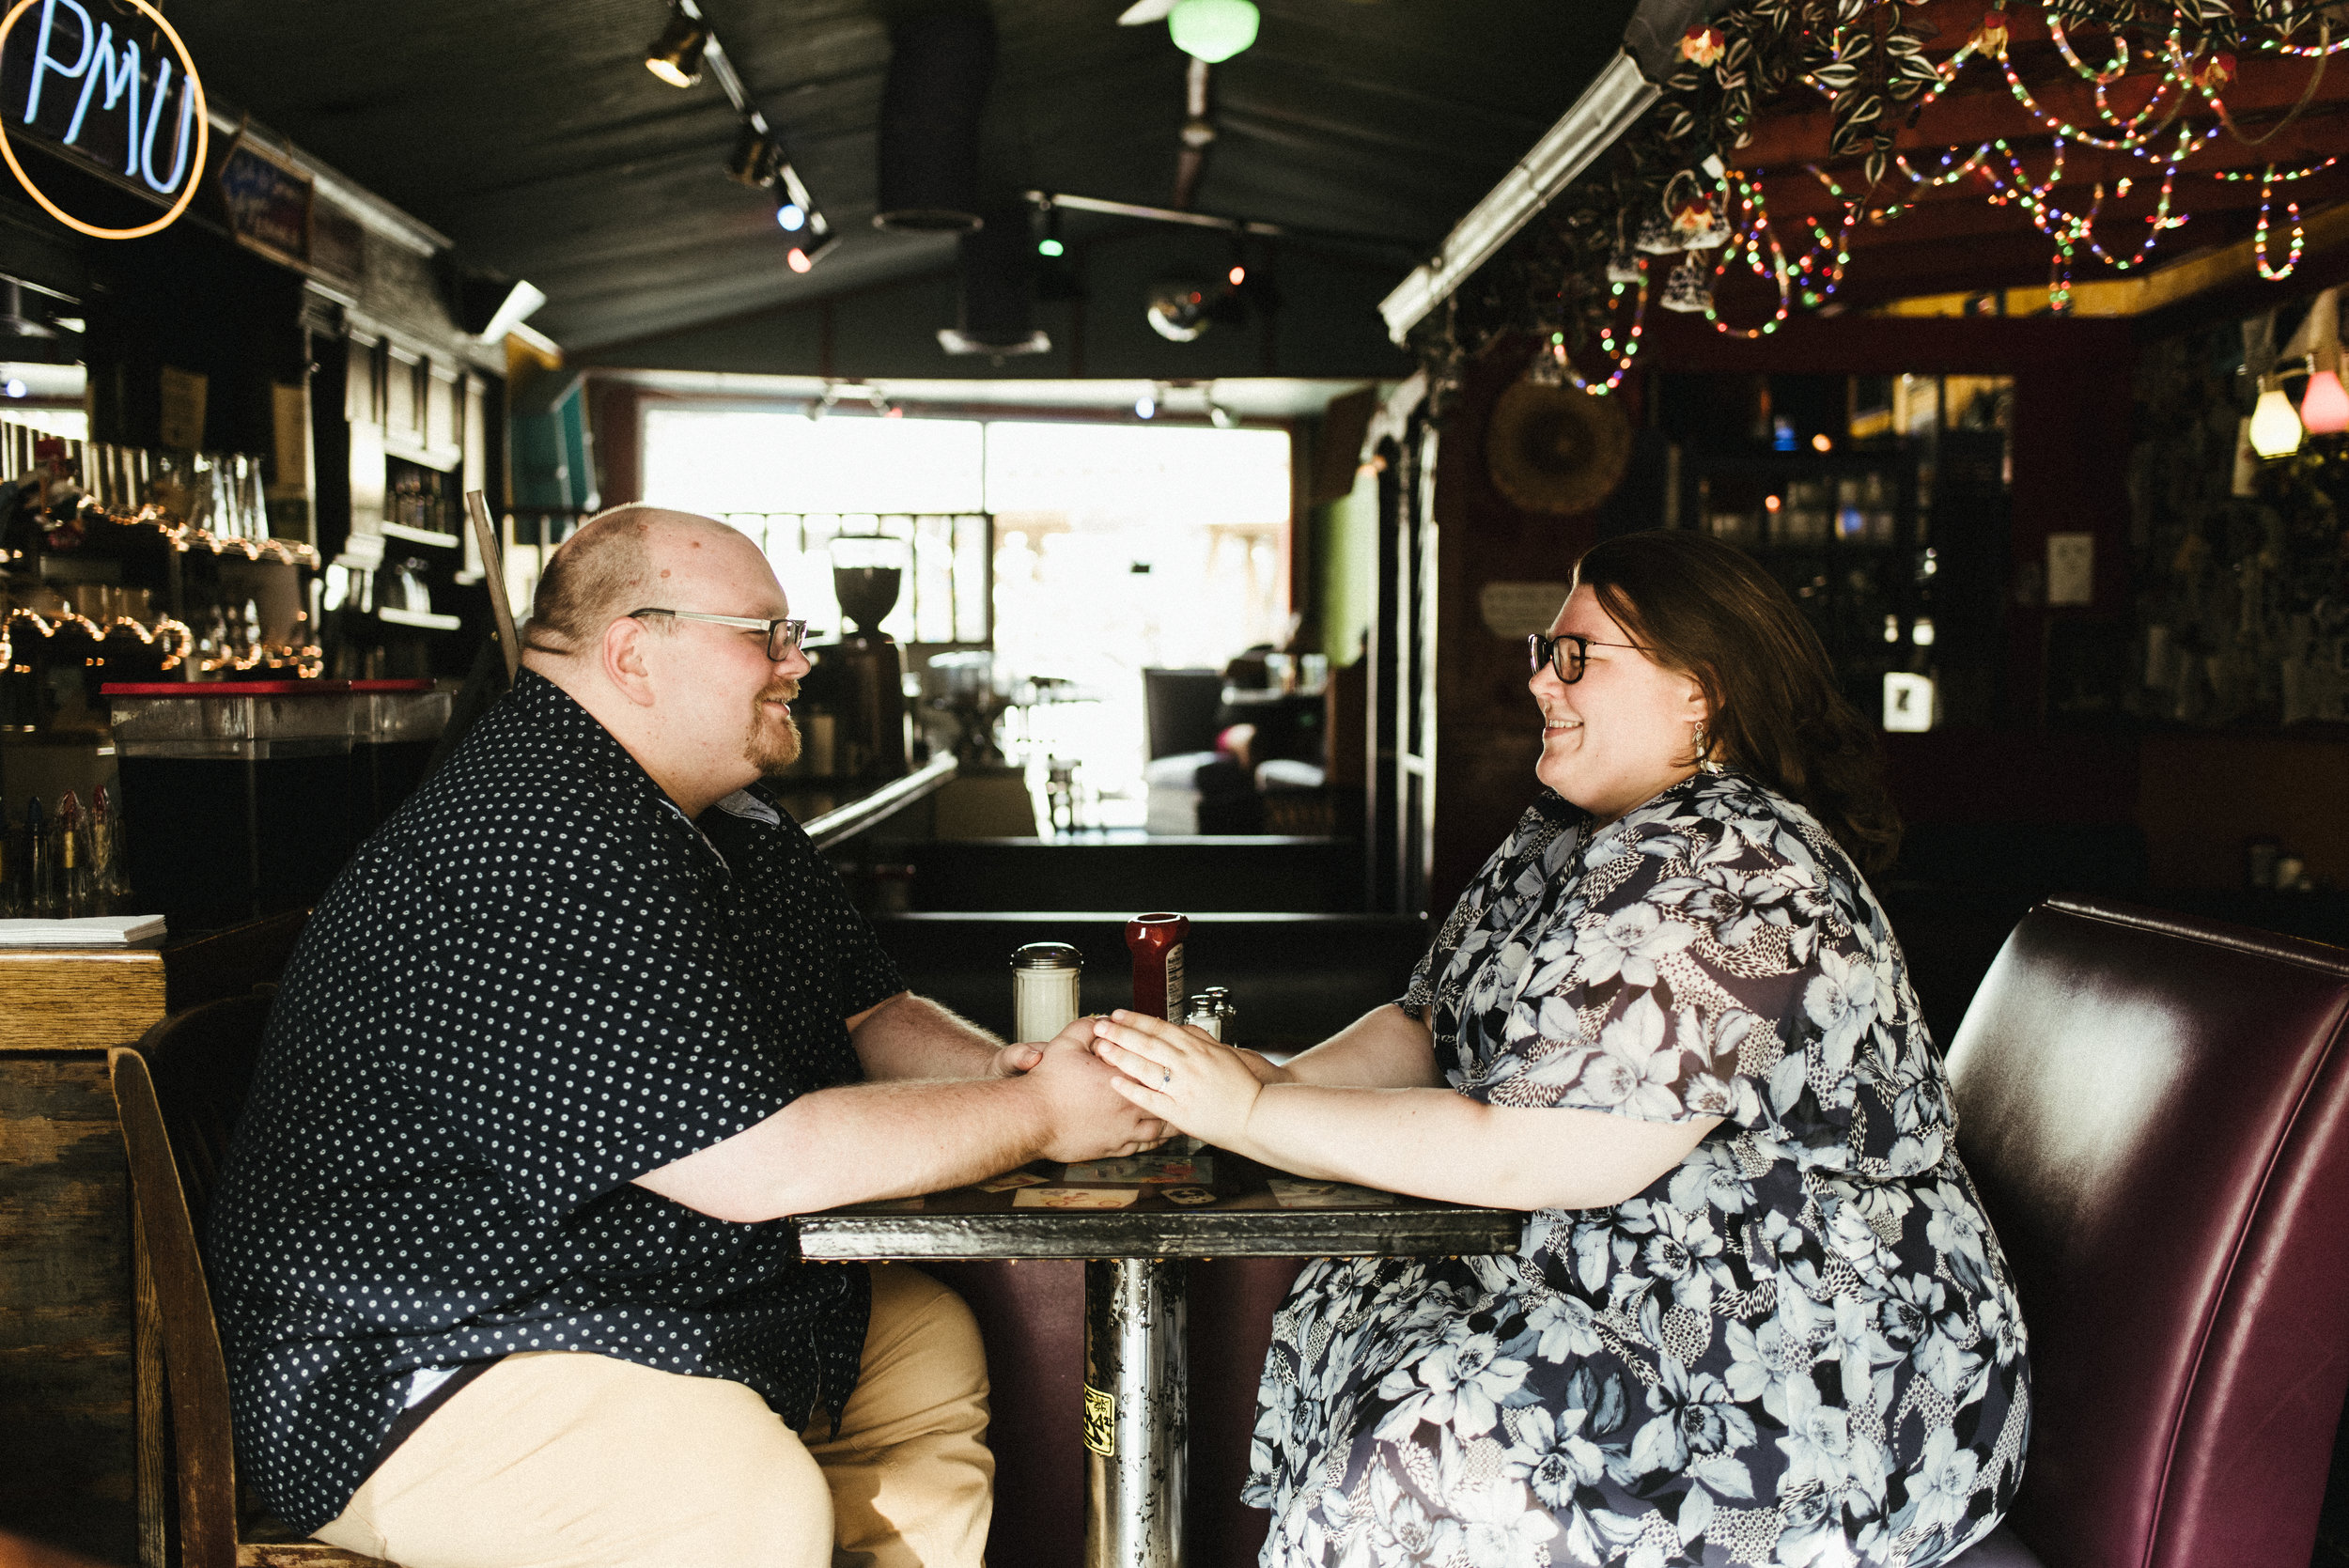 Maren and Dave - Urban Engagement Session | Pick Me Up Cafe Clark Street | Chicago, IL | Naperville Travel Wedding Photographer